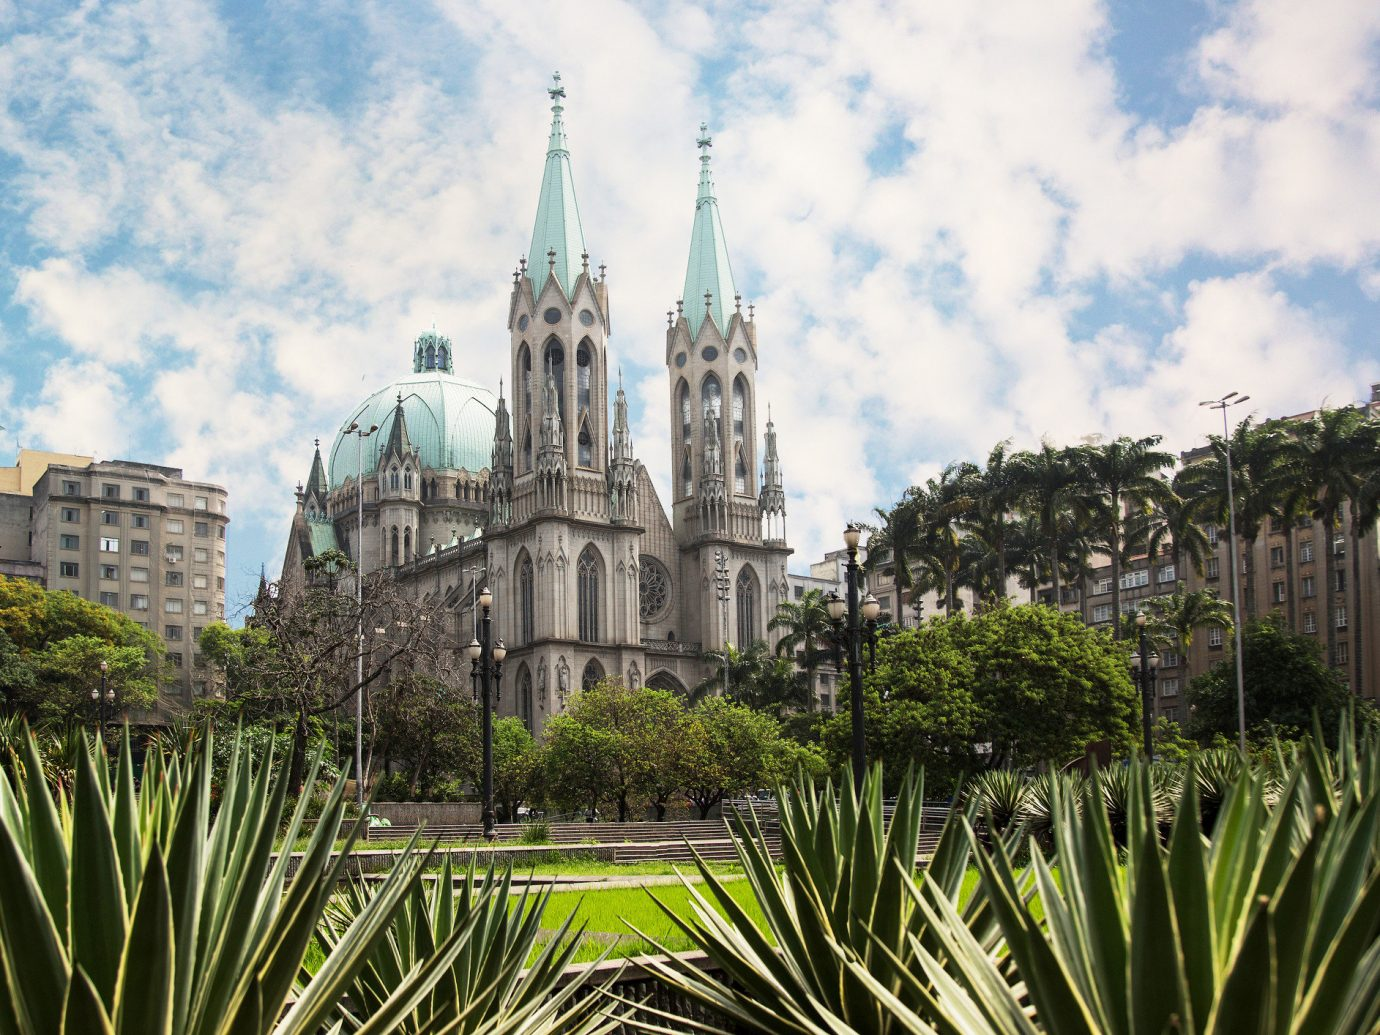 Beaches Brazil Trip Ideas outdoor sky landmark tree plant arecales cathedral grass palm tree building cloud tourist attraction City place of worship spire metropolis landscape tourism day